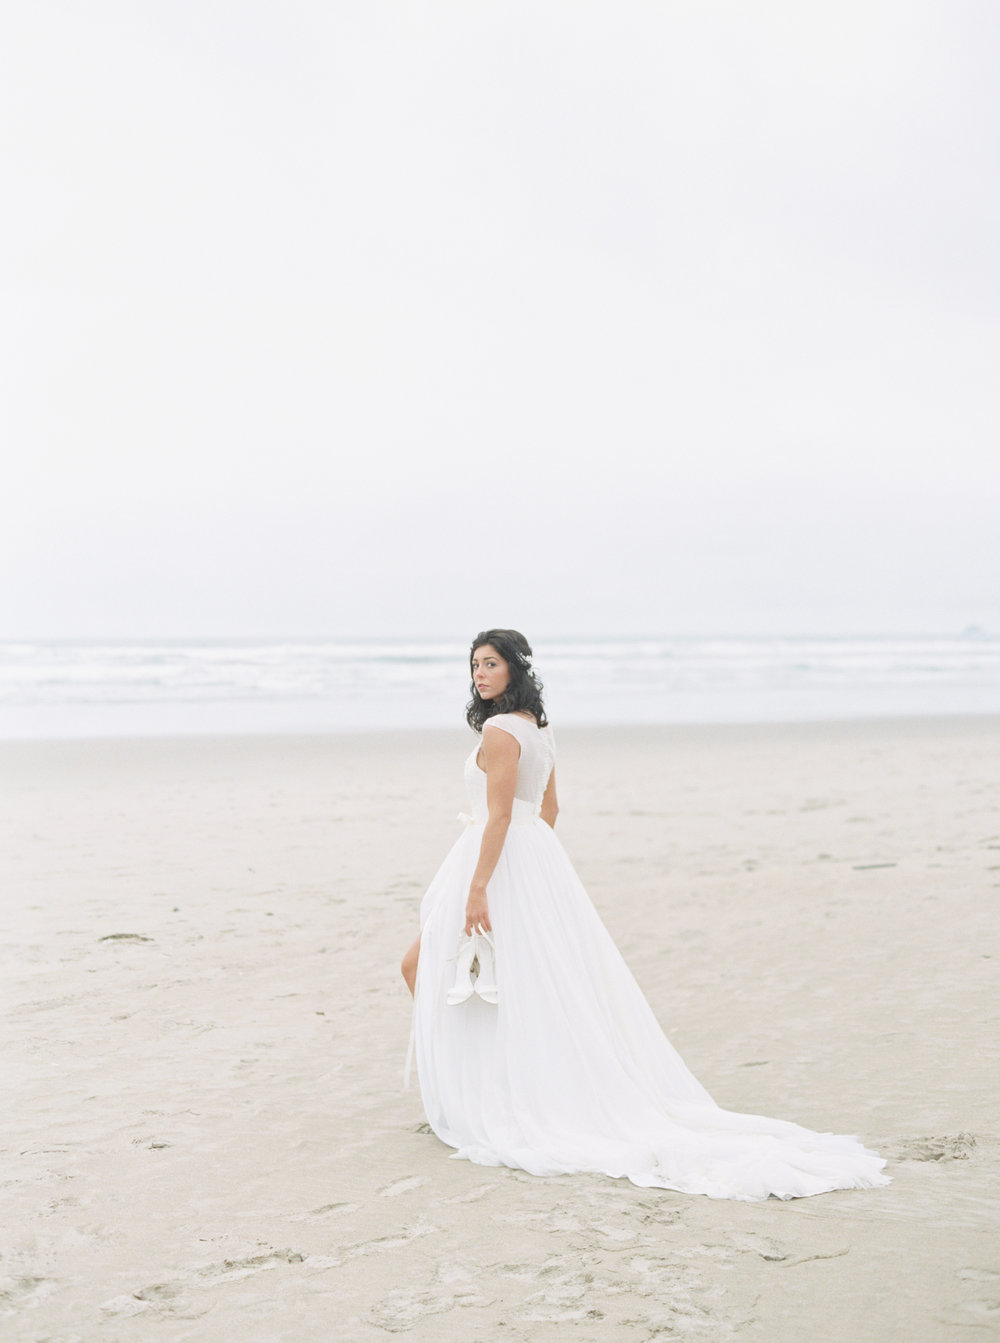 Jacqueline Anne Photography, Beach Wedding Session captured in Portland, Halifax Nova Scotia Wedding Photographer  White Embroidered Wedding Dresses, Kathryn Bass Bridal  Published in Hochzeitsguide